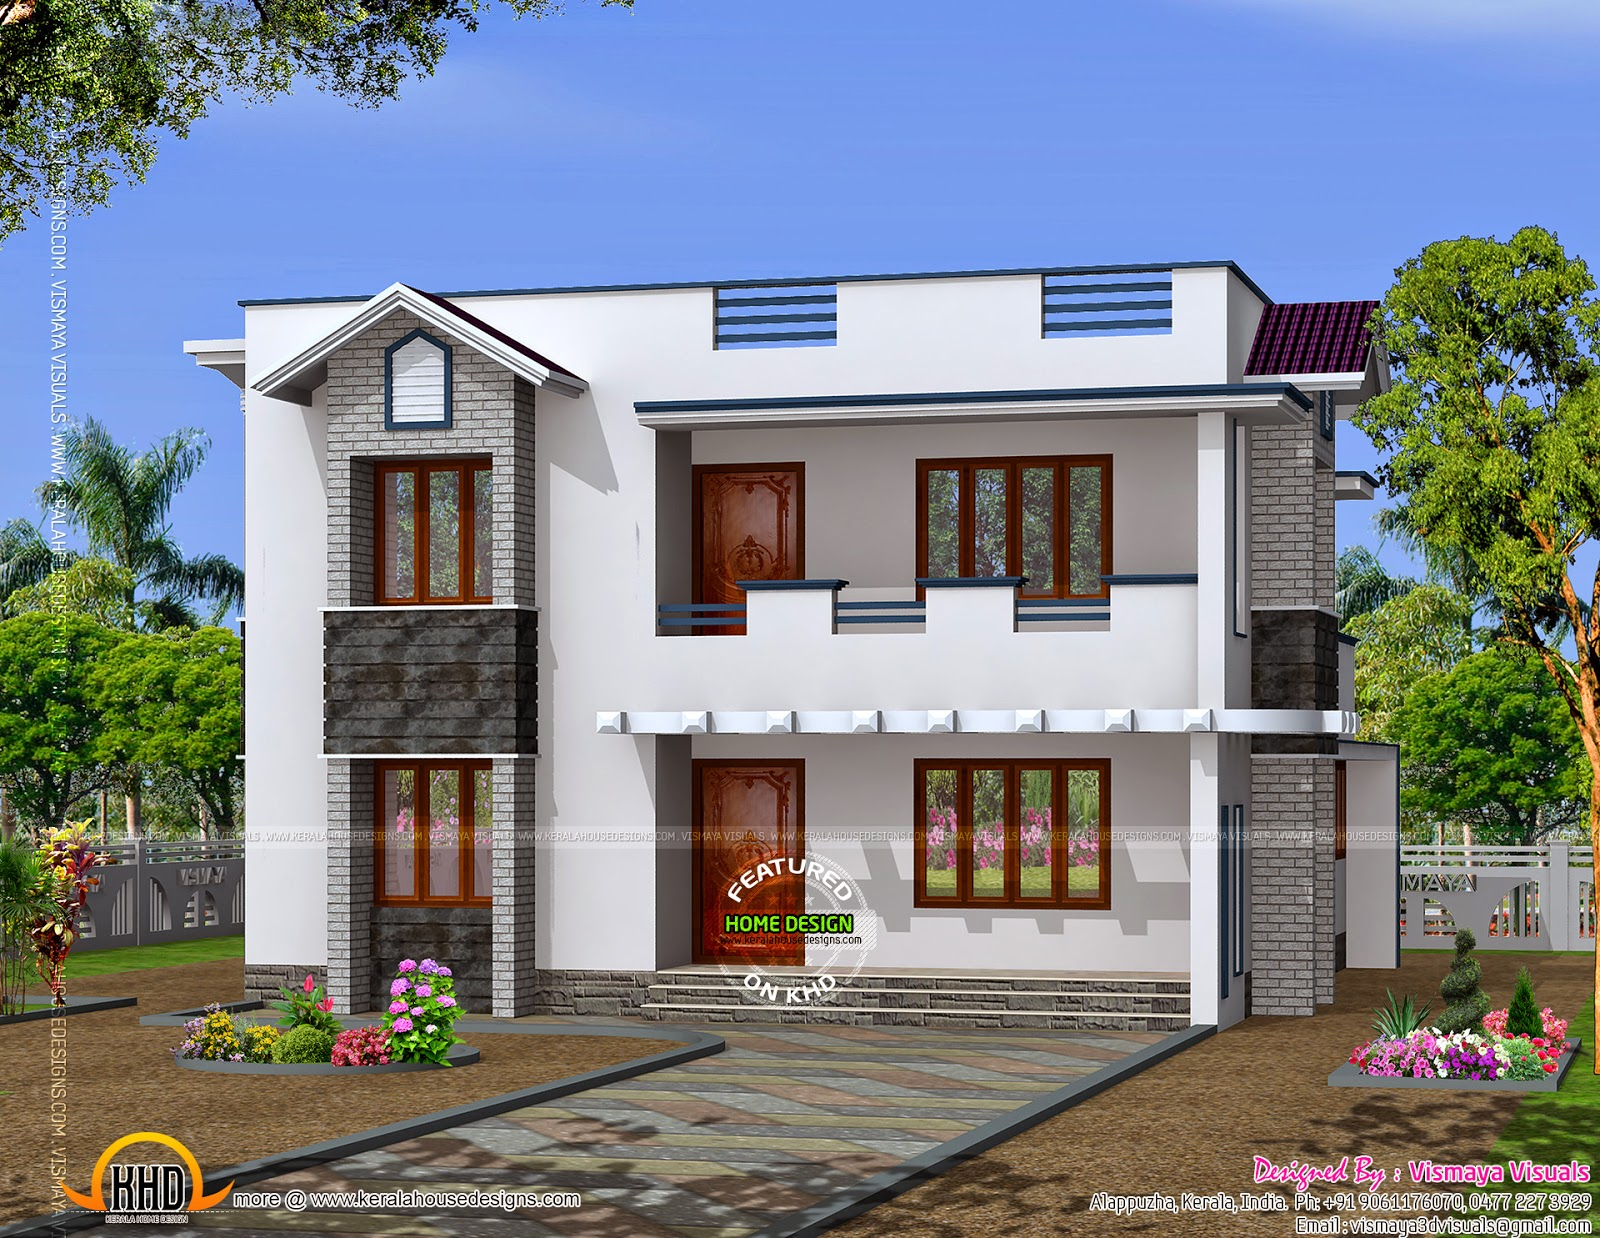 Simple design home kerala home design and floor plans for Simple roof design house plans